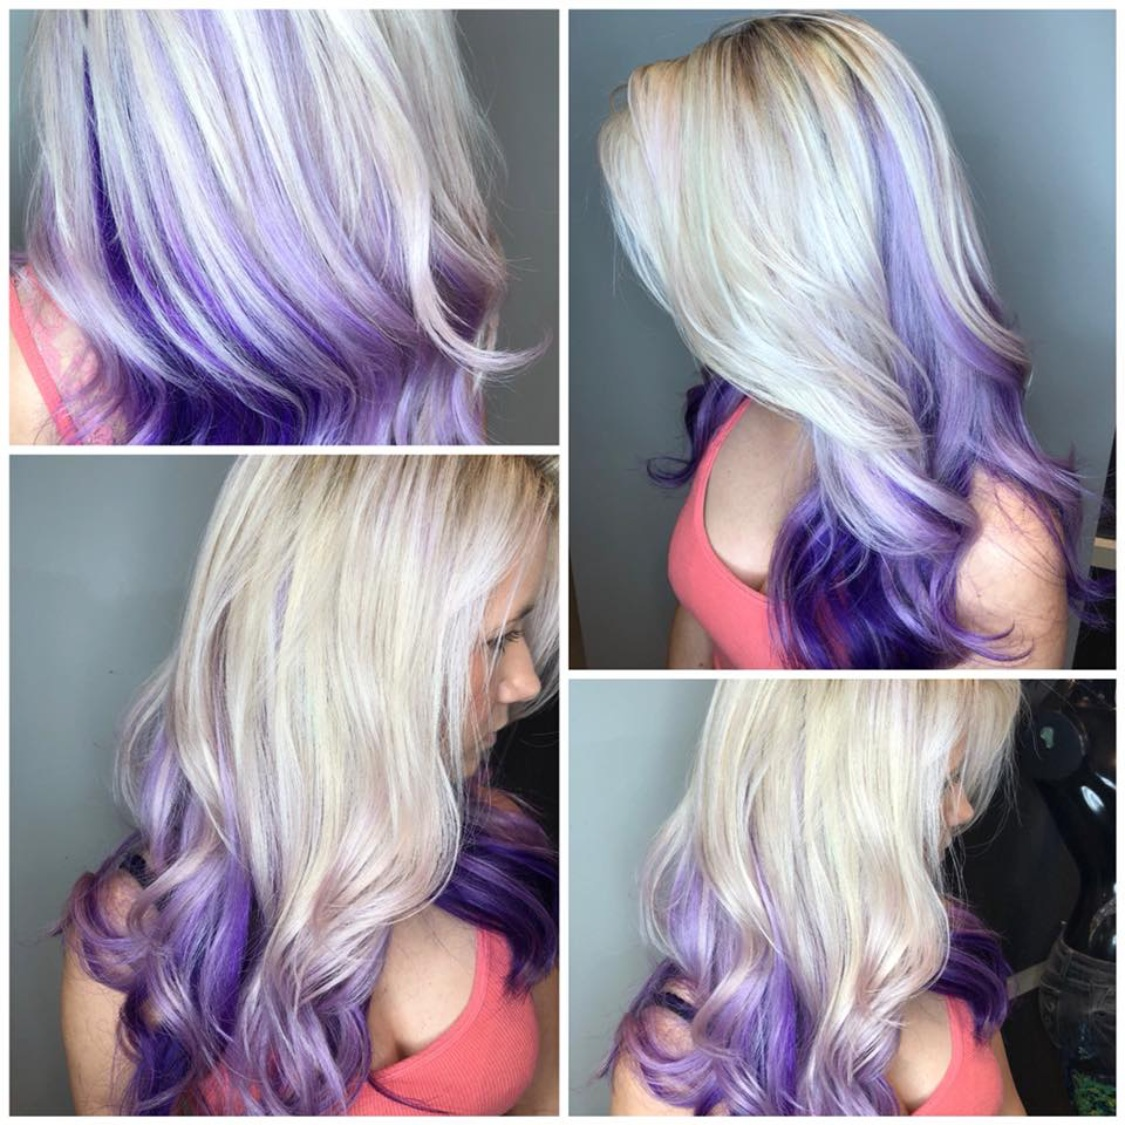 Rebecca Crosby Stylist Artistik Edge Hair Salon Lake Highlands Texas Purple Hair.png